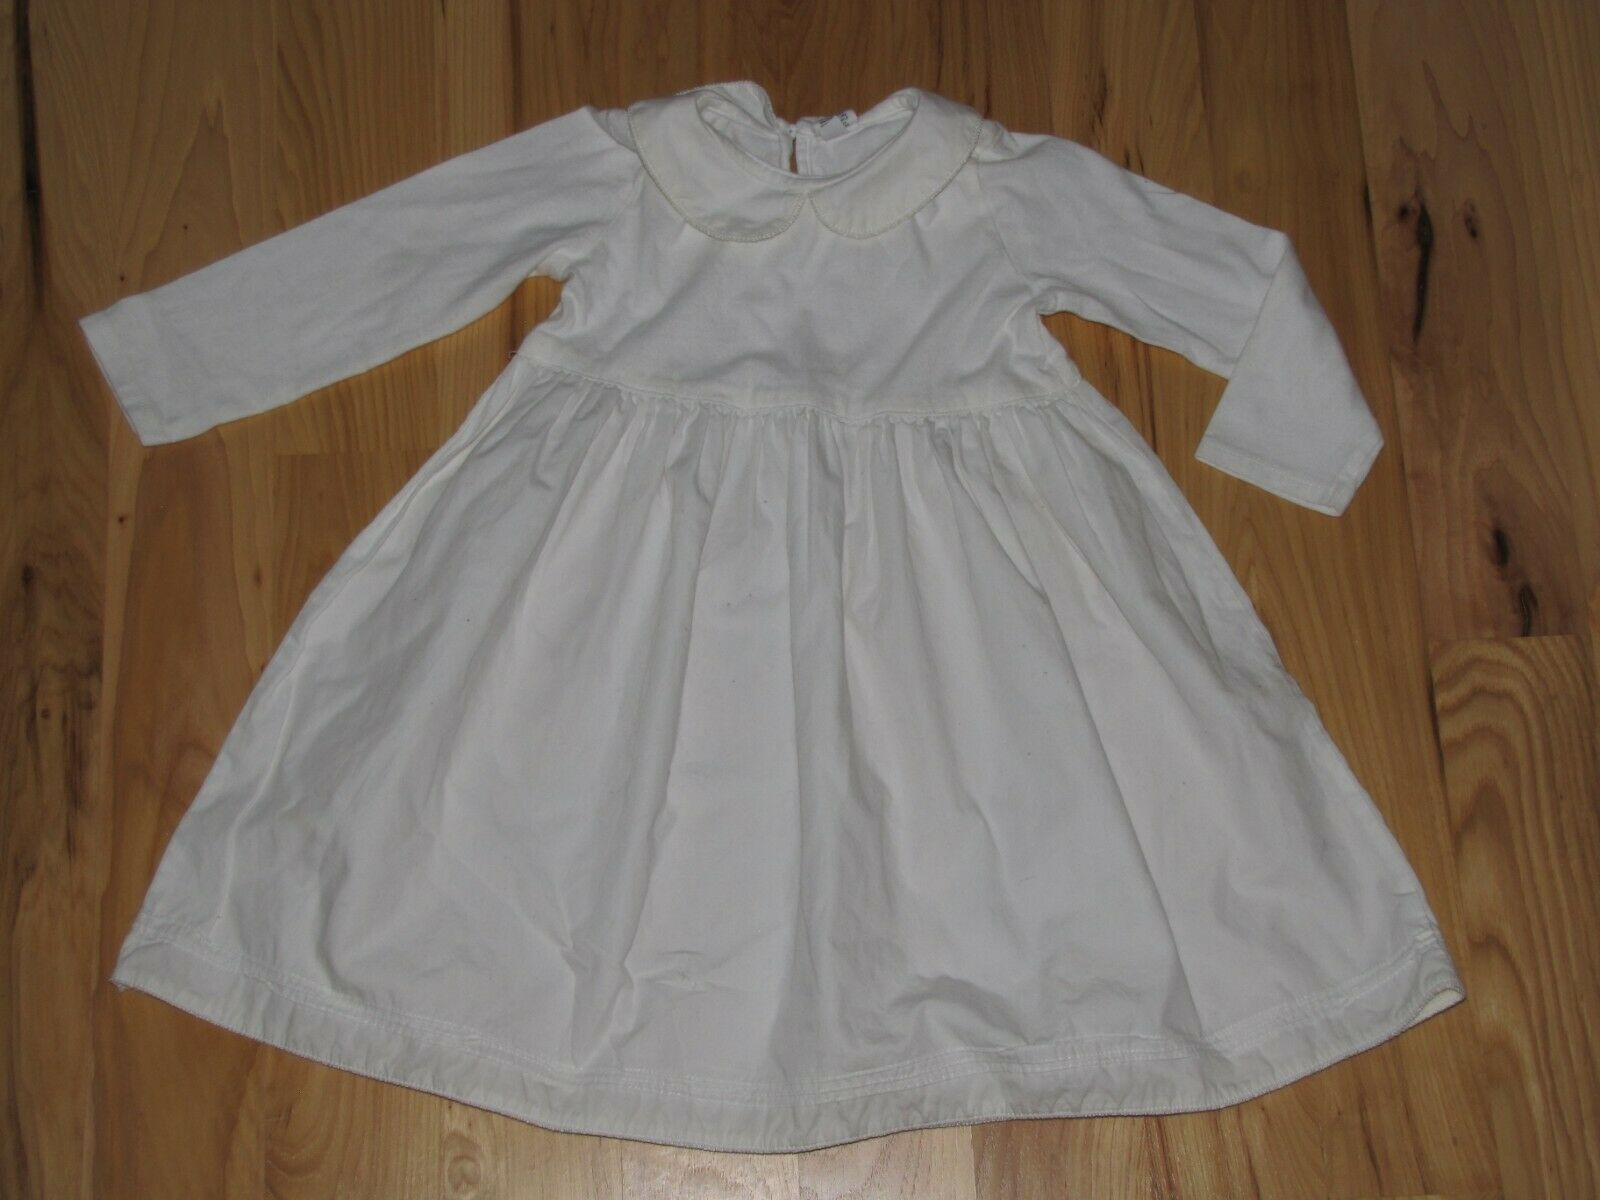 Primary image for BABY GAP SOLID PLAIN WHITE GIRL DRESS CLOTHES OUTFIT LONG SLEEVE PETER PAN 3T